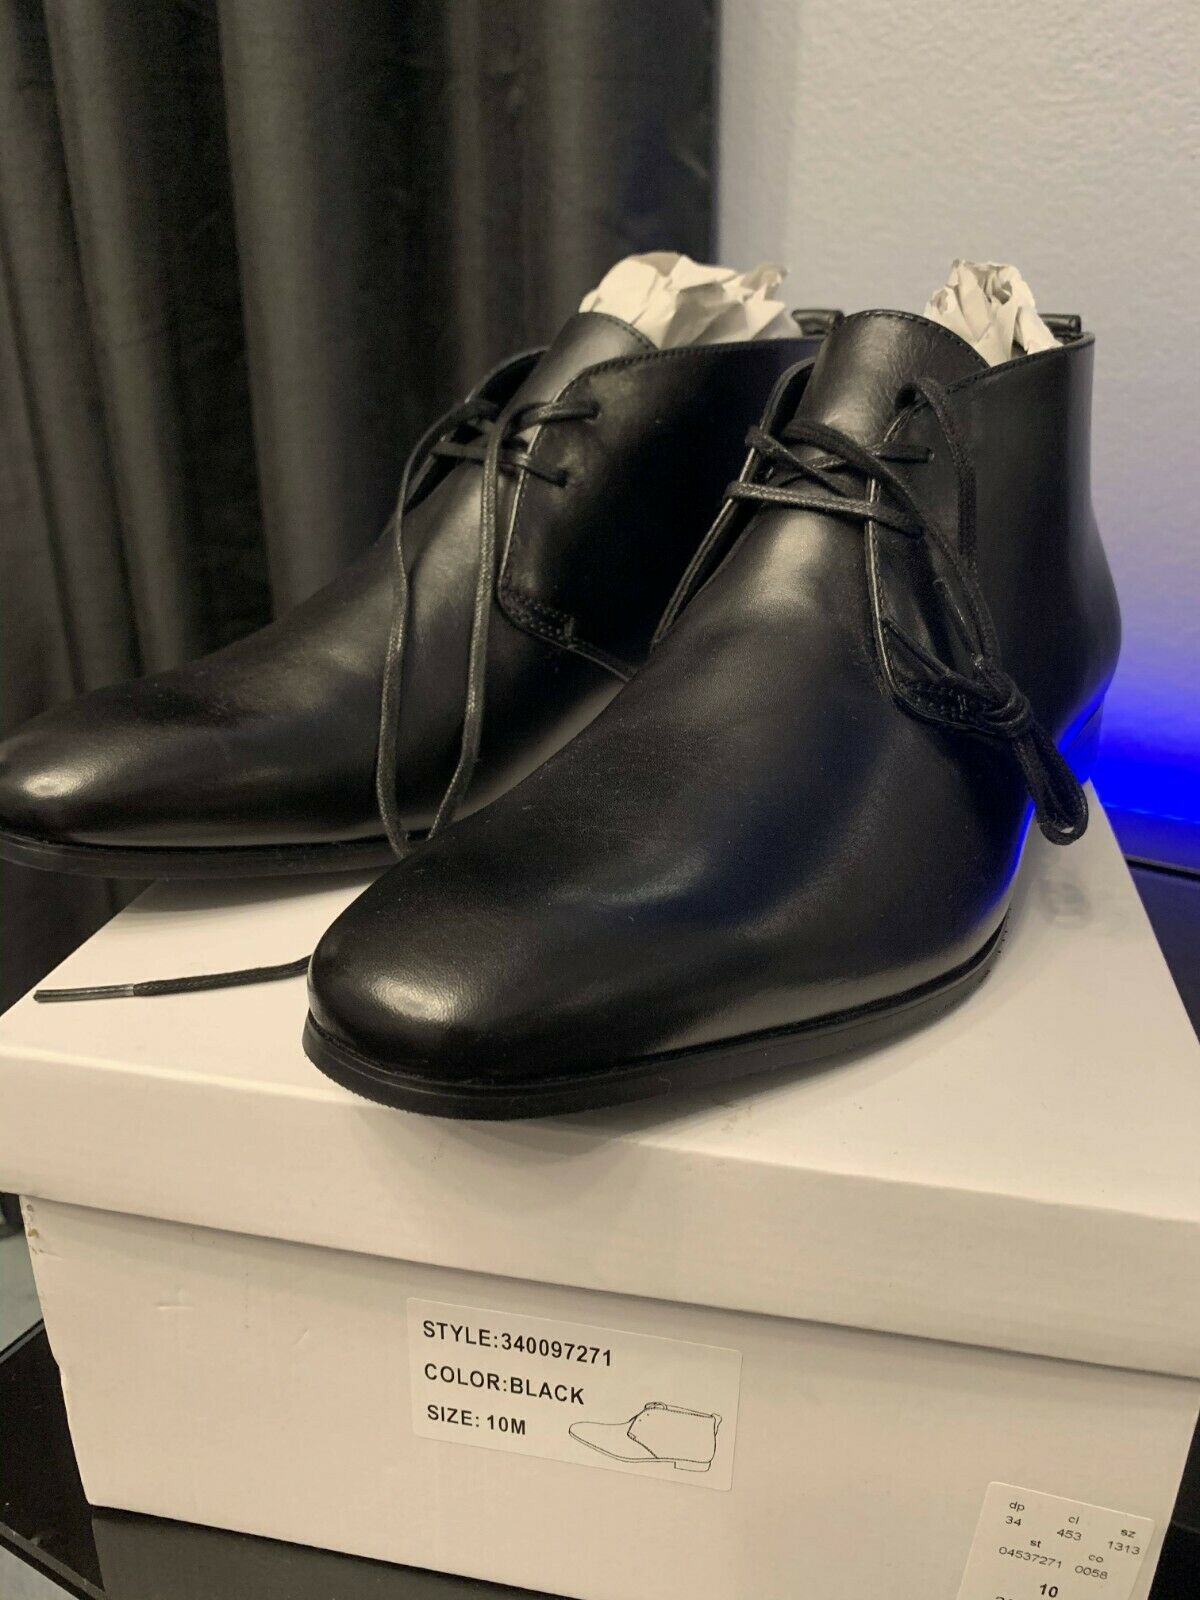 Express Men's Leather Dressy Chukka Boots 10 New with Tags and box